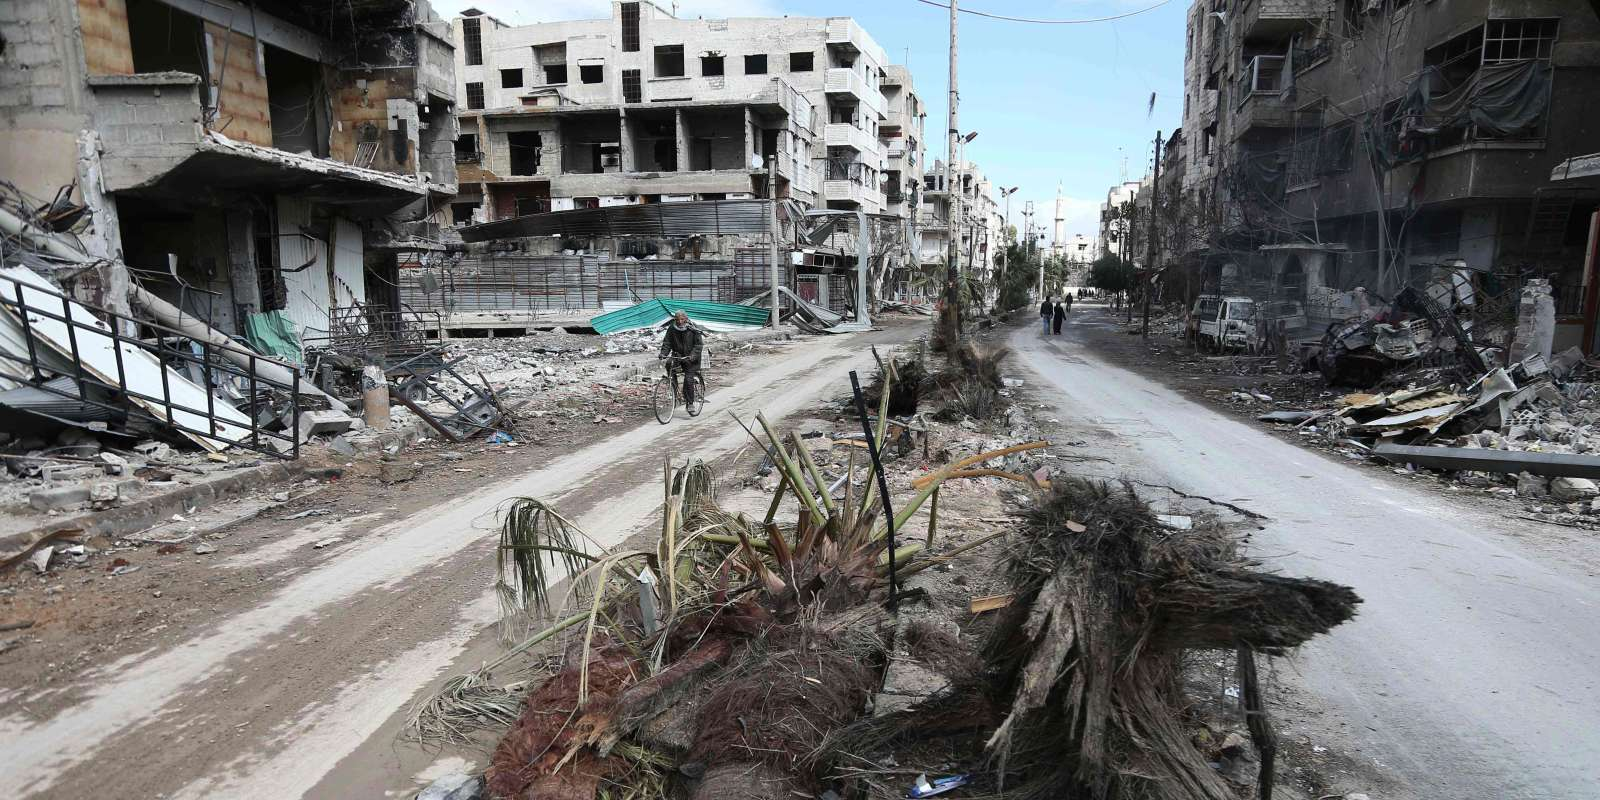 CORRECTION / TOPSHOT - A Syrian man cycles past destroyed buildings in the rebel-held town of Hamouria, in the besieged Eastern Ghouta region on the outskirts of the capital Damascus, on February 27, 2018. A humanitarian